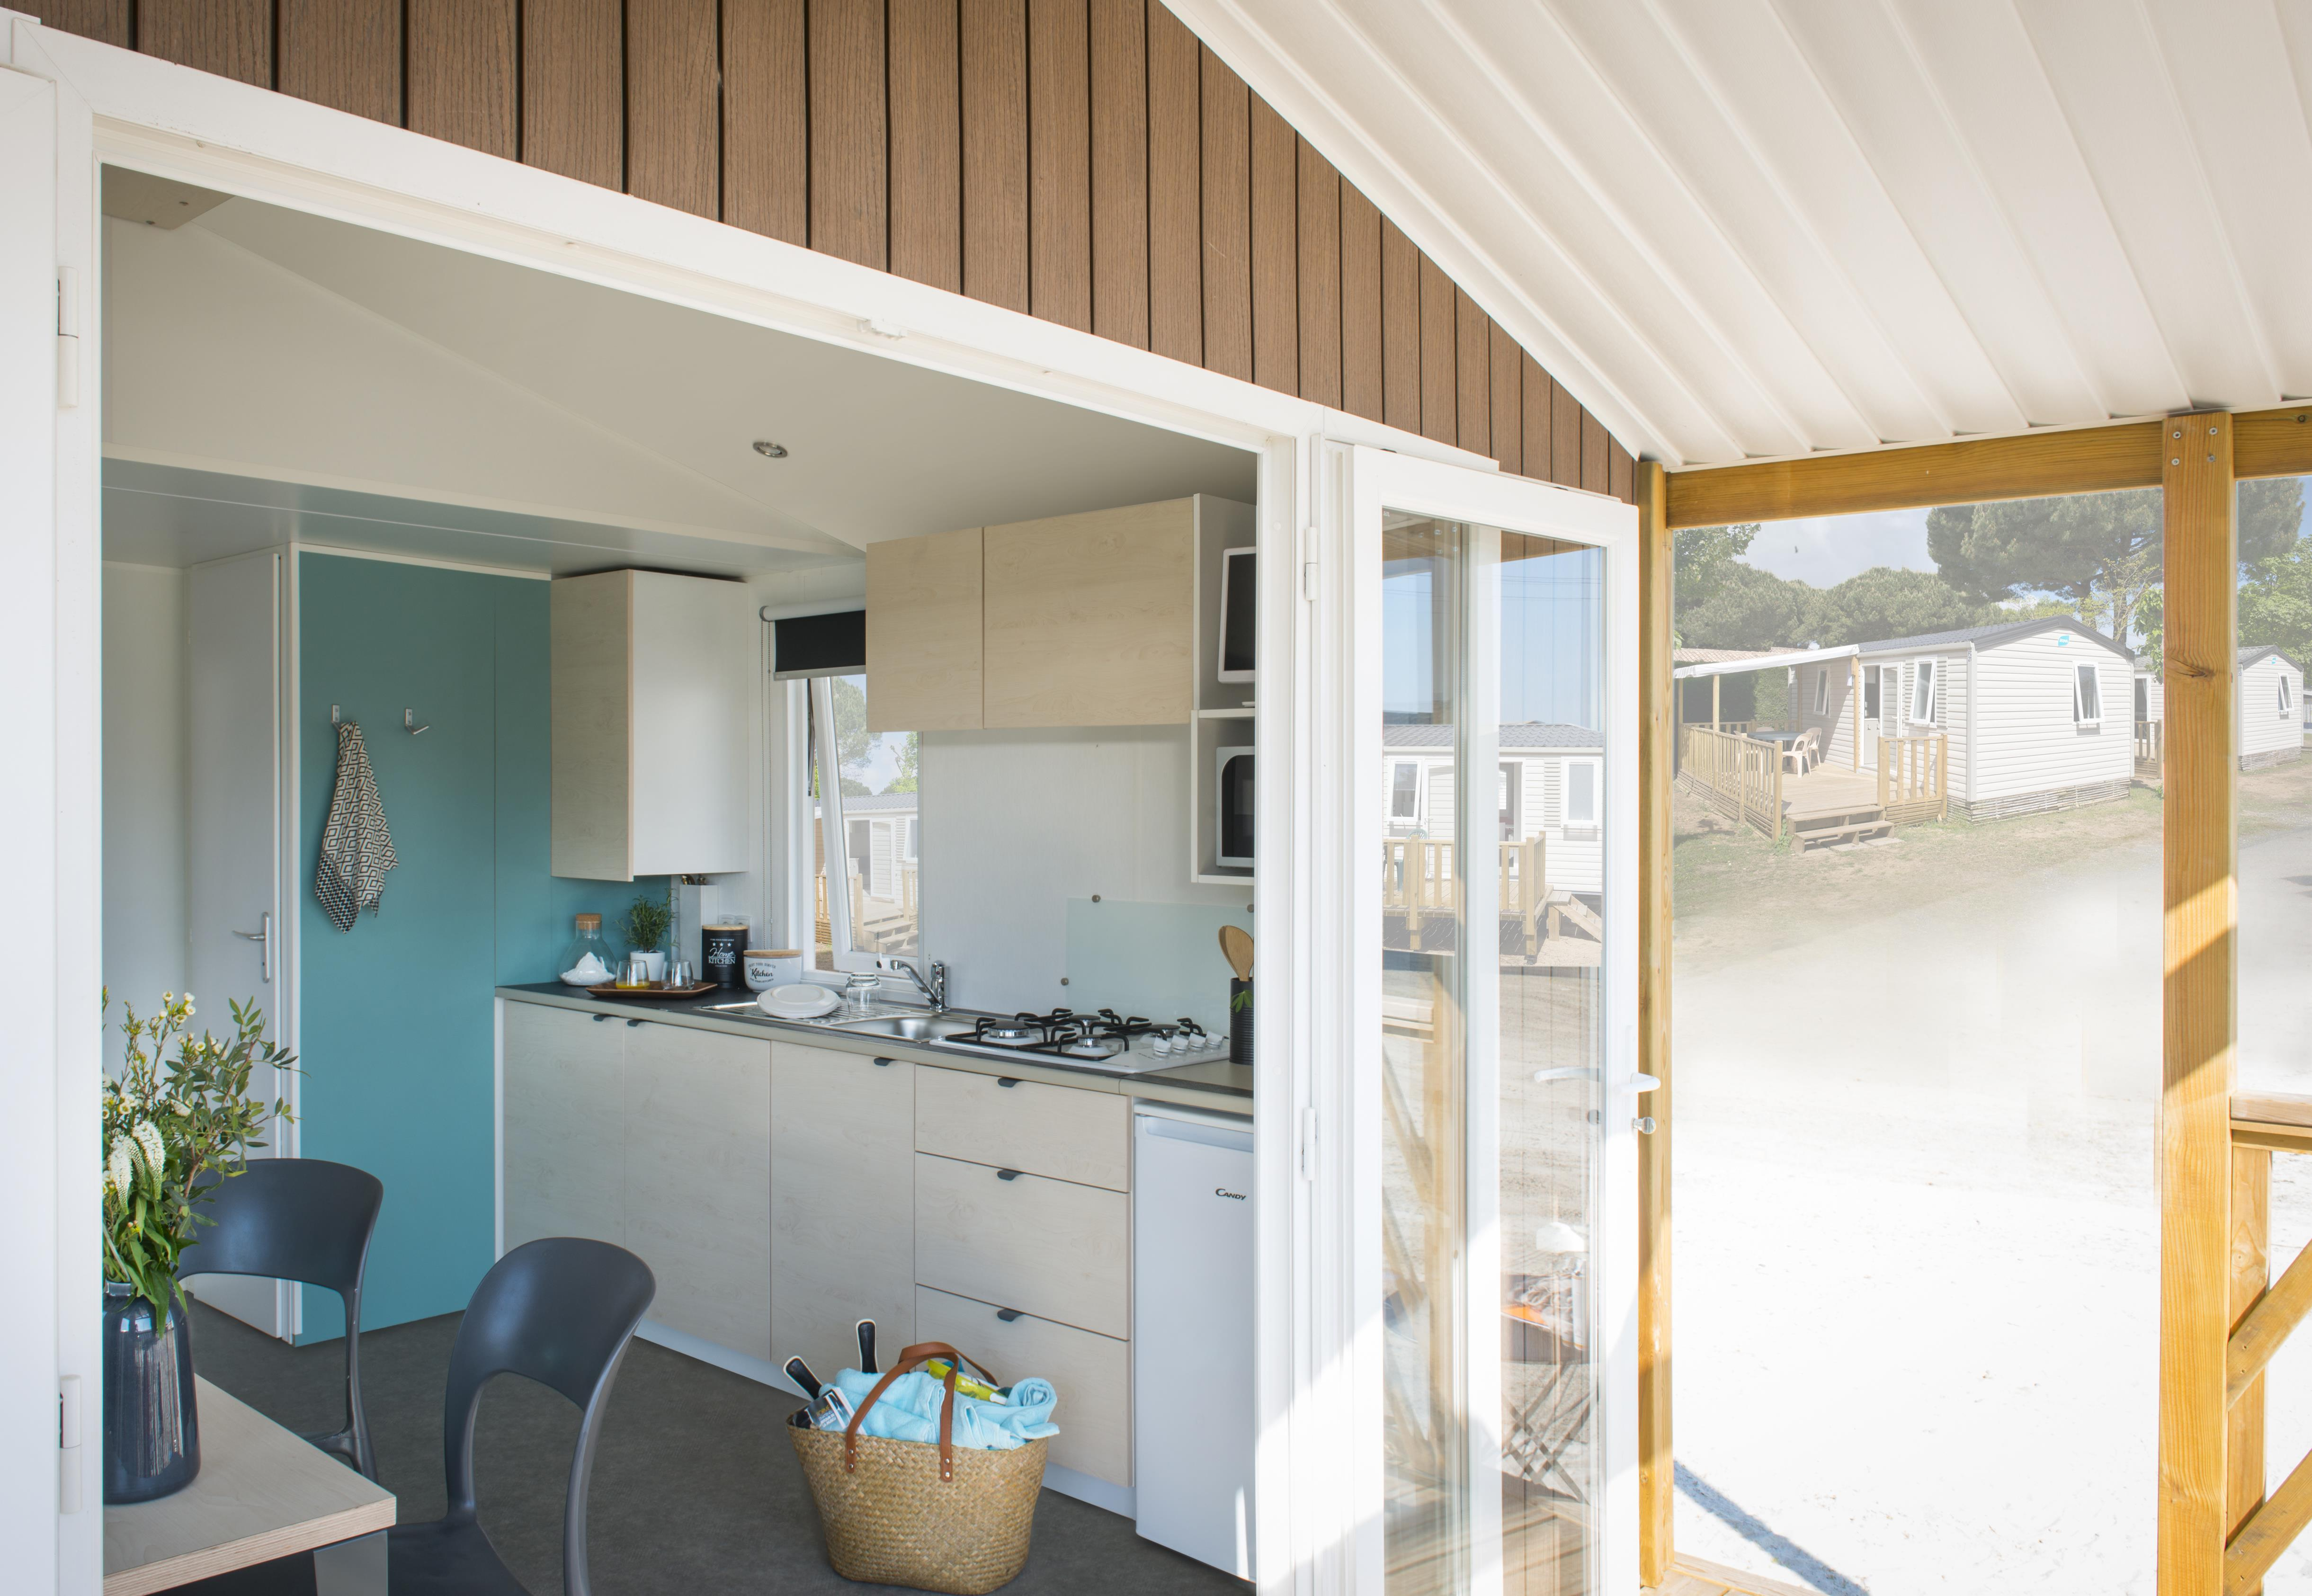 Location - Loggia Bay, 2 Chambres - Camping Les Charmes